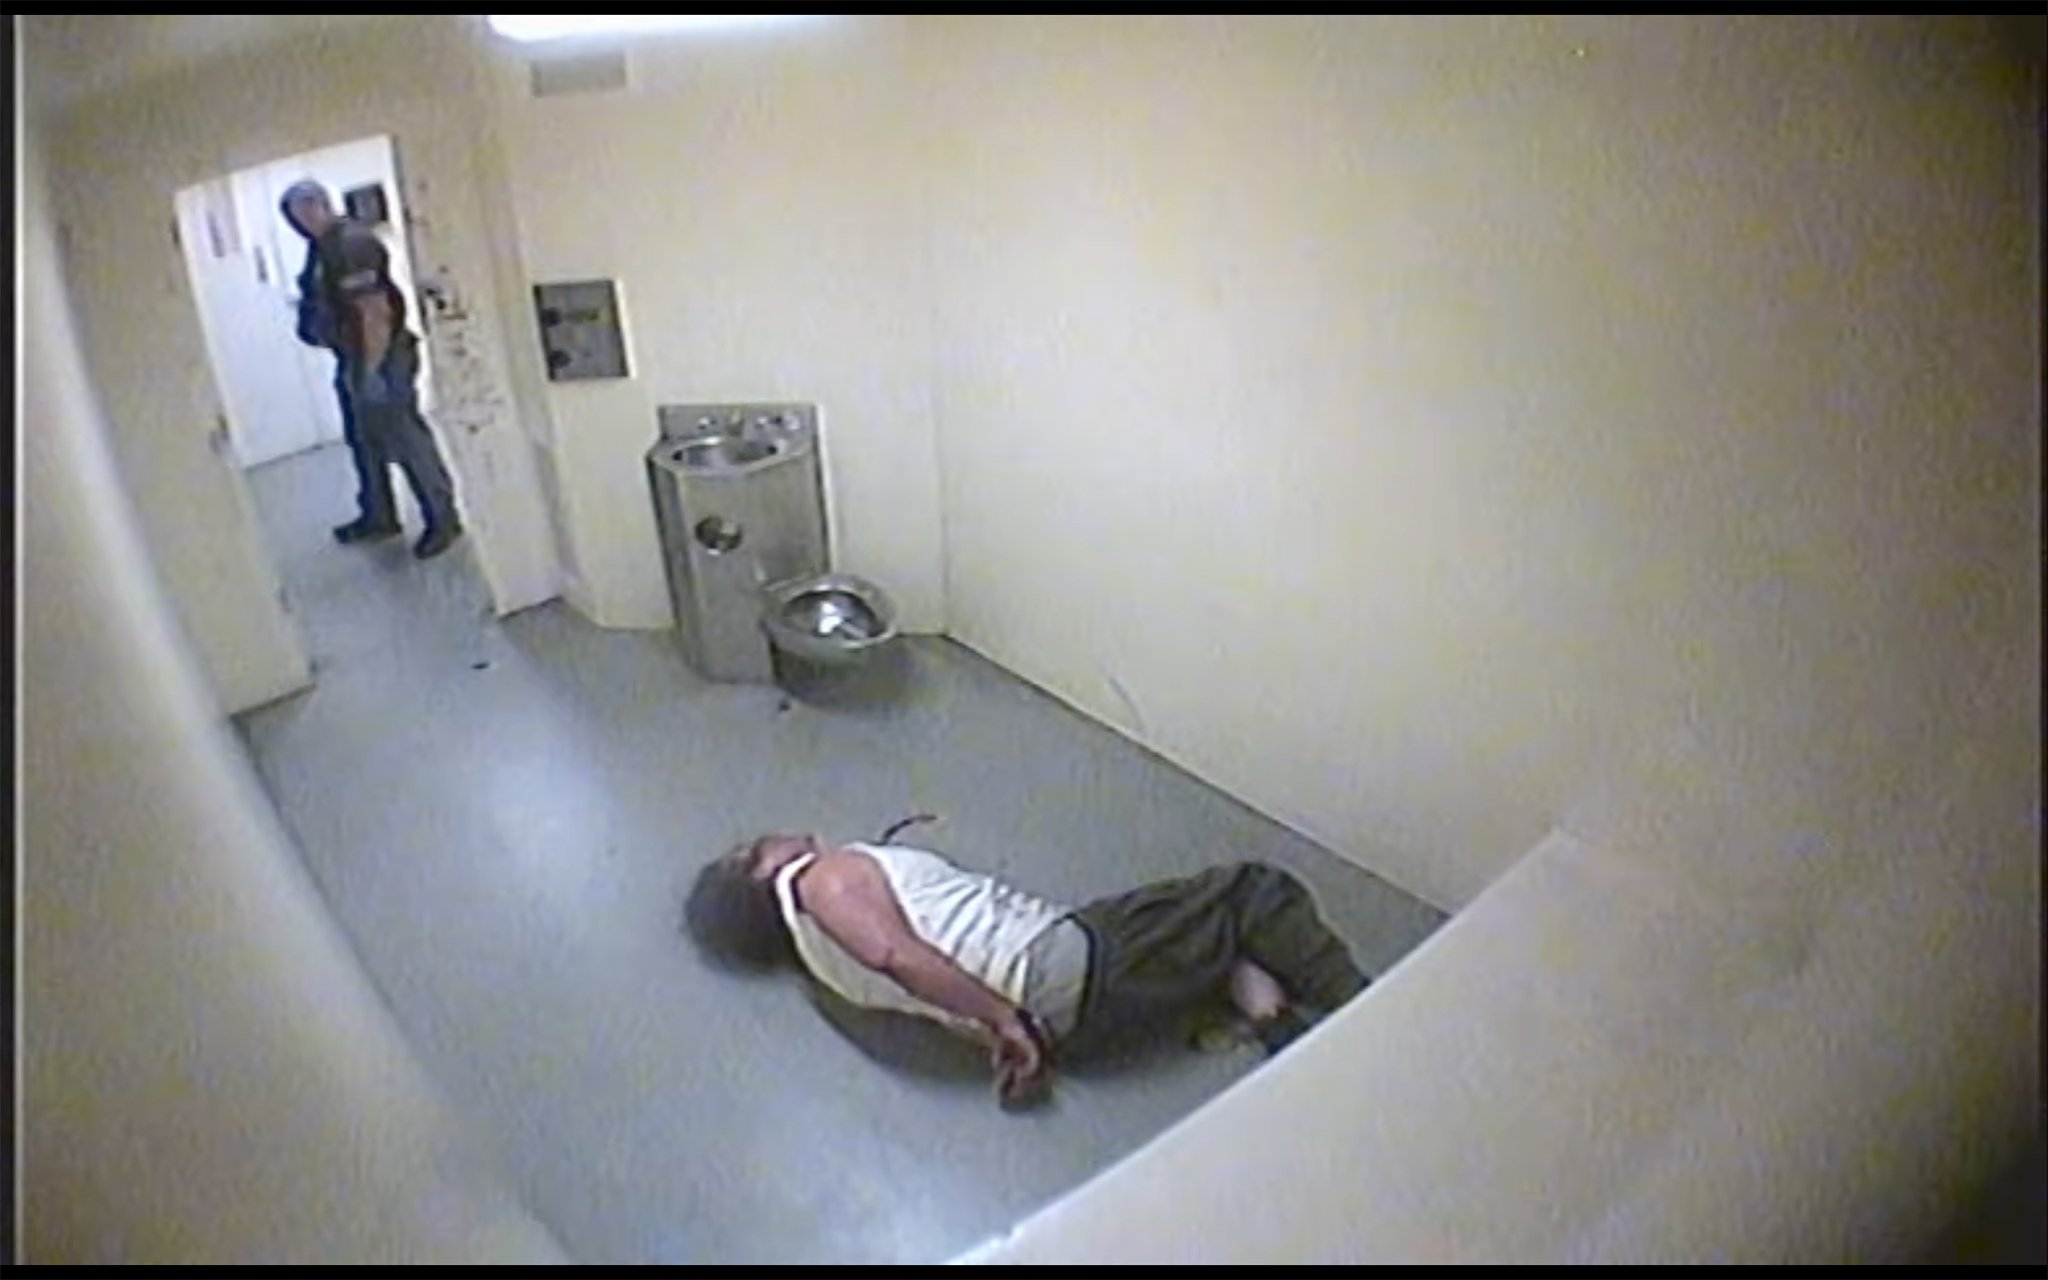 Surveillance video shows then-Detective Kent Tribble repeatedly struck Enrique Cruz, 29, as Cruz sat in a holding cell inside the Vallejo Police Department in 2012. Tribble has since been promoted to lieutenant, and is as a senior member of the department's command staff.